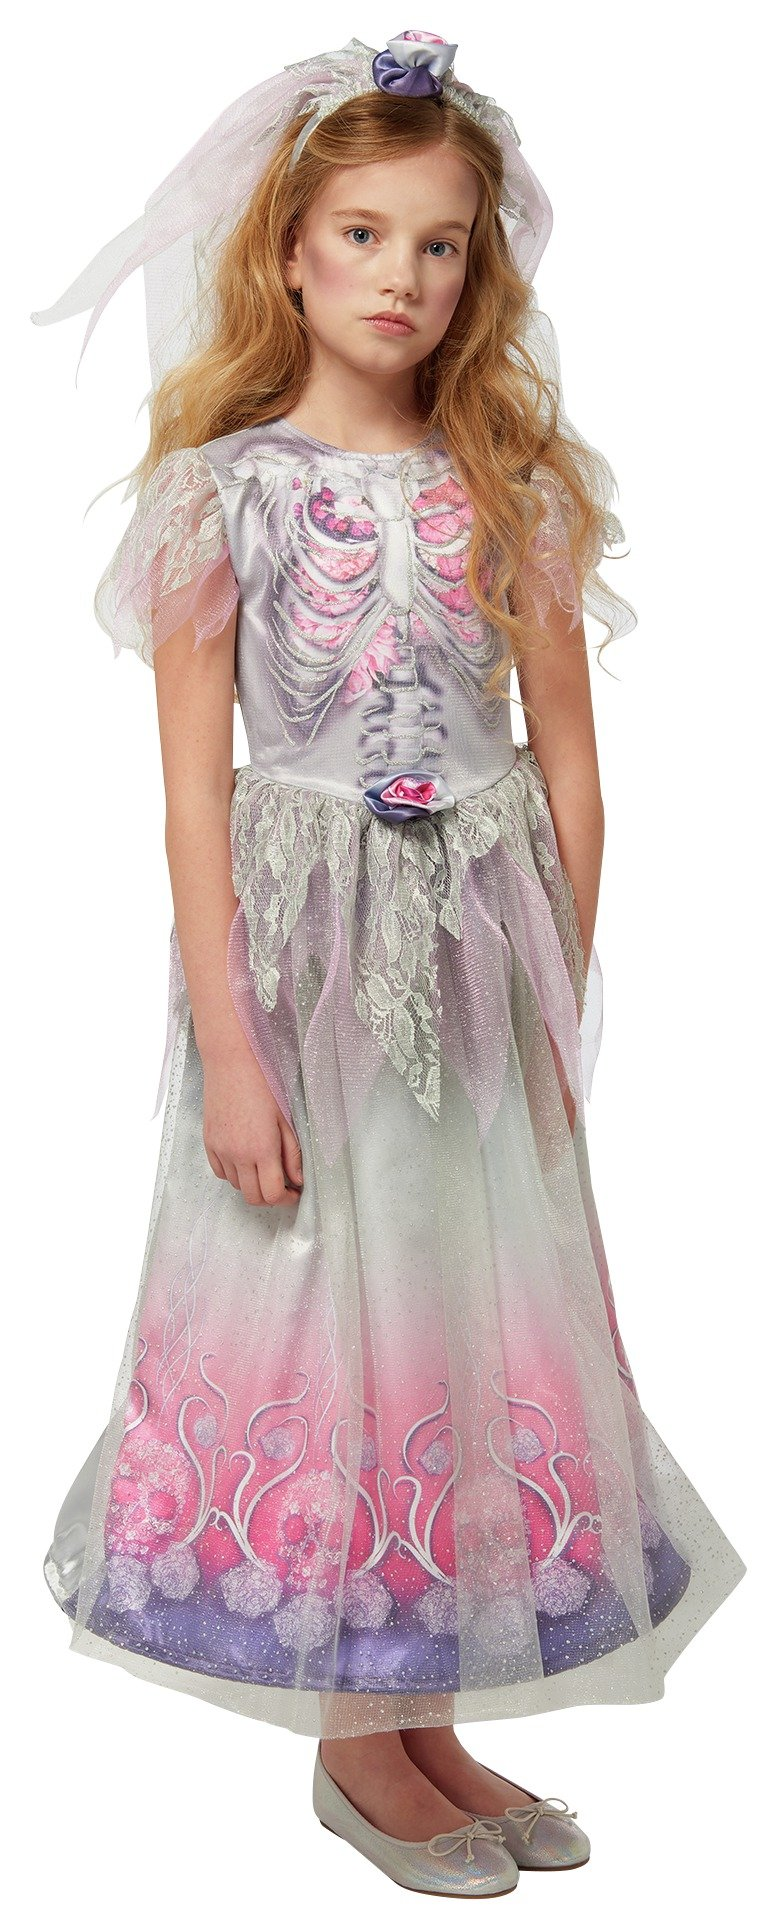 gothic bride and veil fancy dress costume  910 years